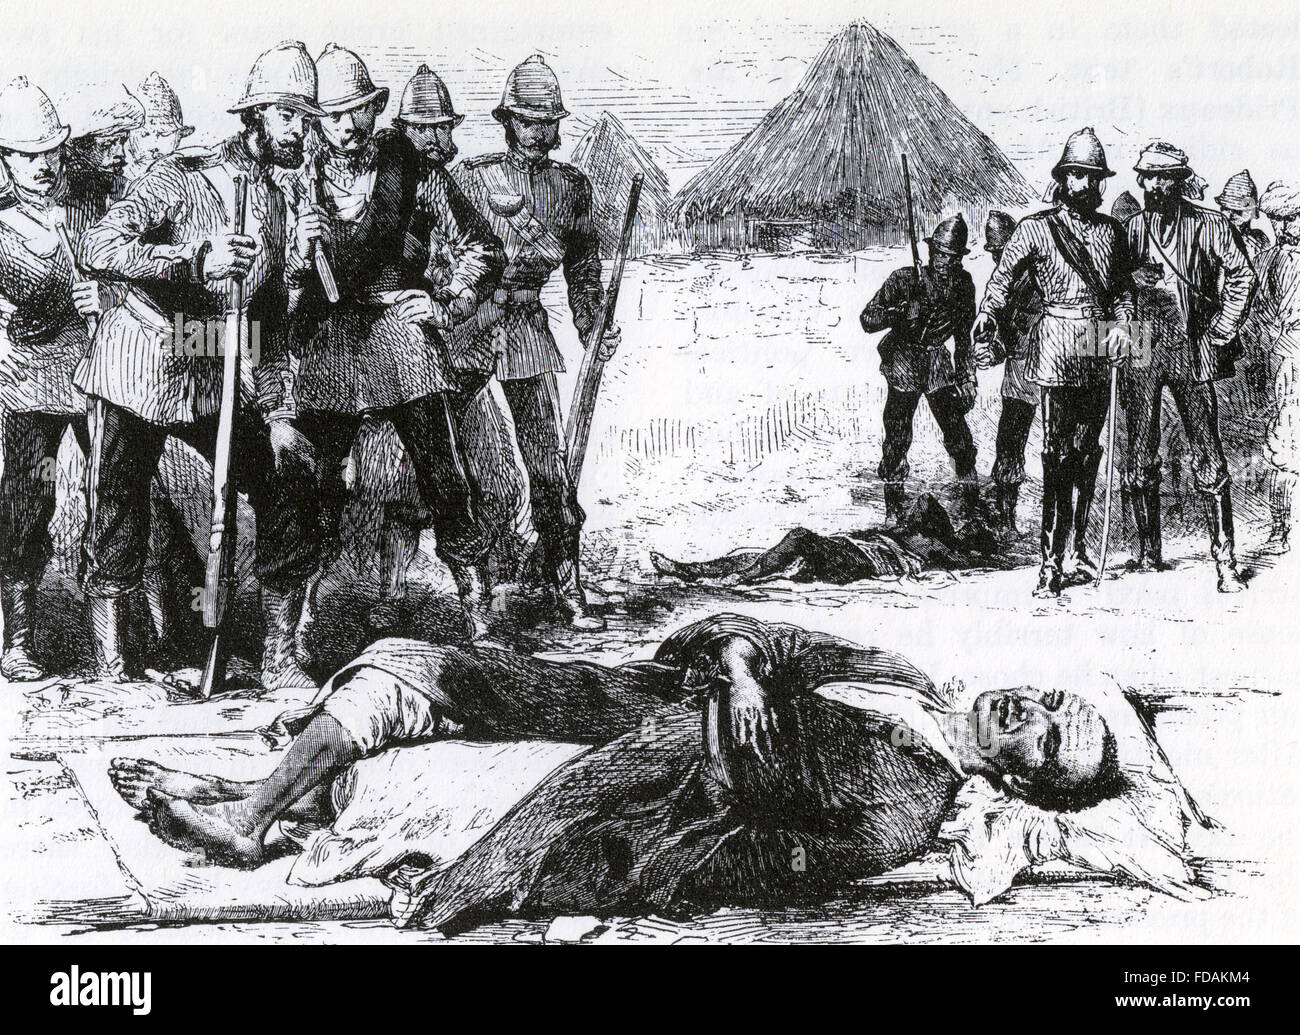 BATTLE OF MAGDALA, Abyssinia, April 1868.  British soldiers viewing the corpse of King Theodore, 13 April 1868 - Stock Image